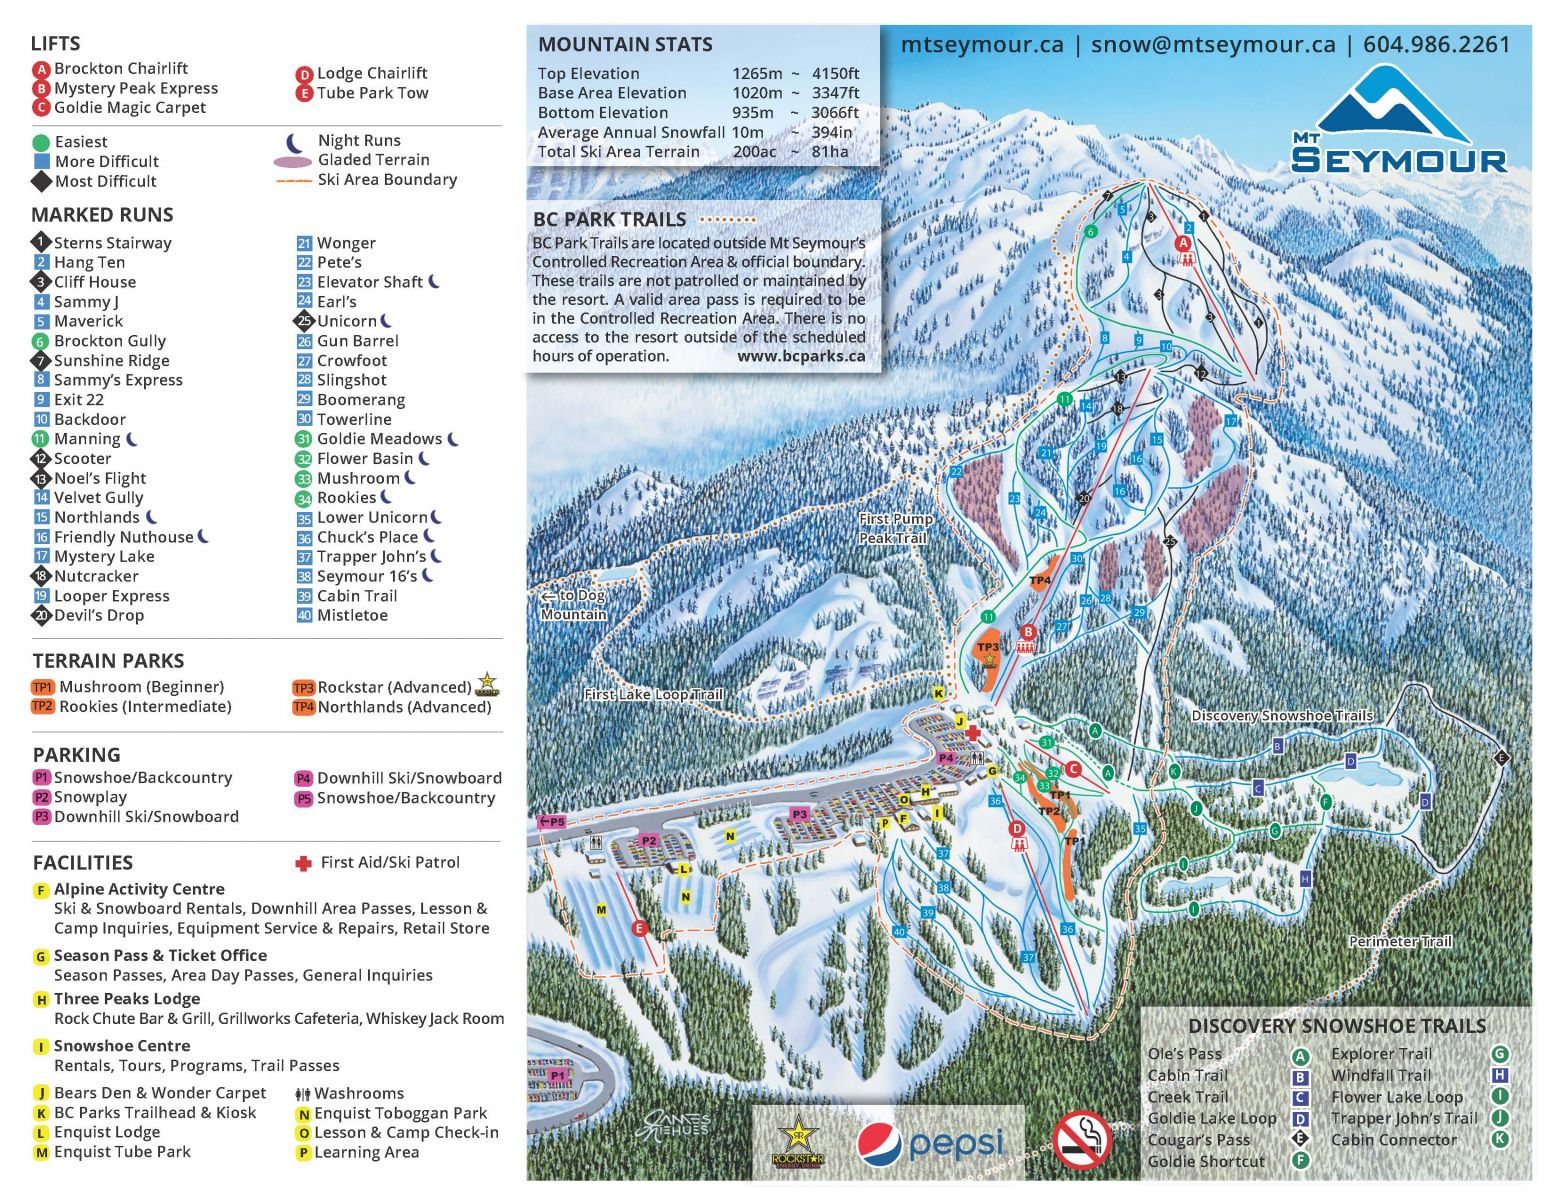 Trail Map | Mt Seymour on snowshoe wv, babcock state park map, cass scenic railroad map, snowshoe lodging, snowshoe village, snoqualmie valley trail map, holly river state park map, snowshoe restaurants, snowshoe western territory, snowshoe mountain,